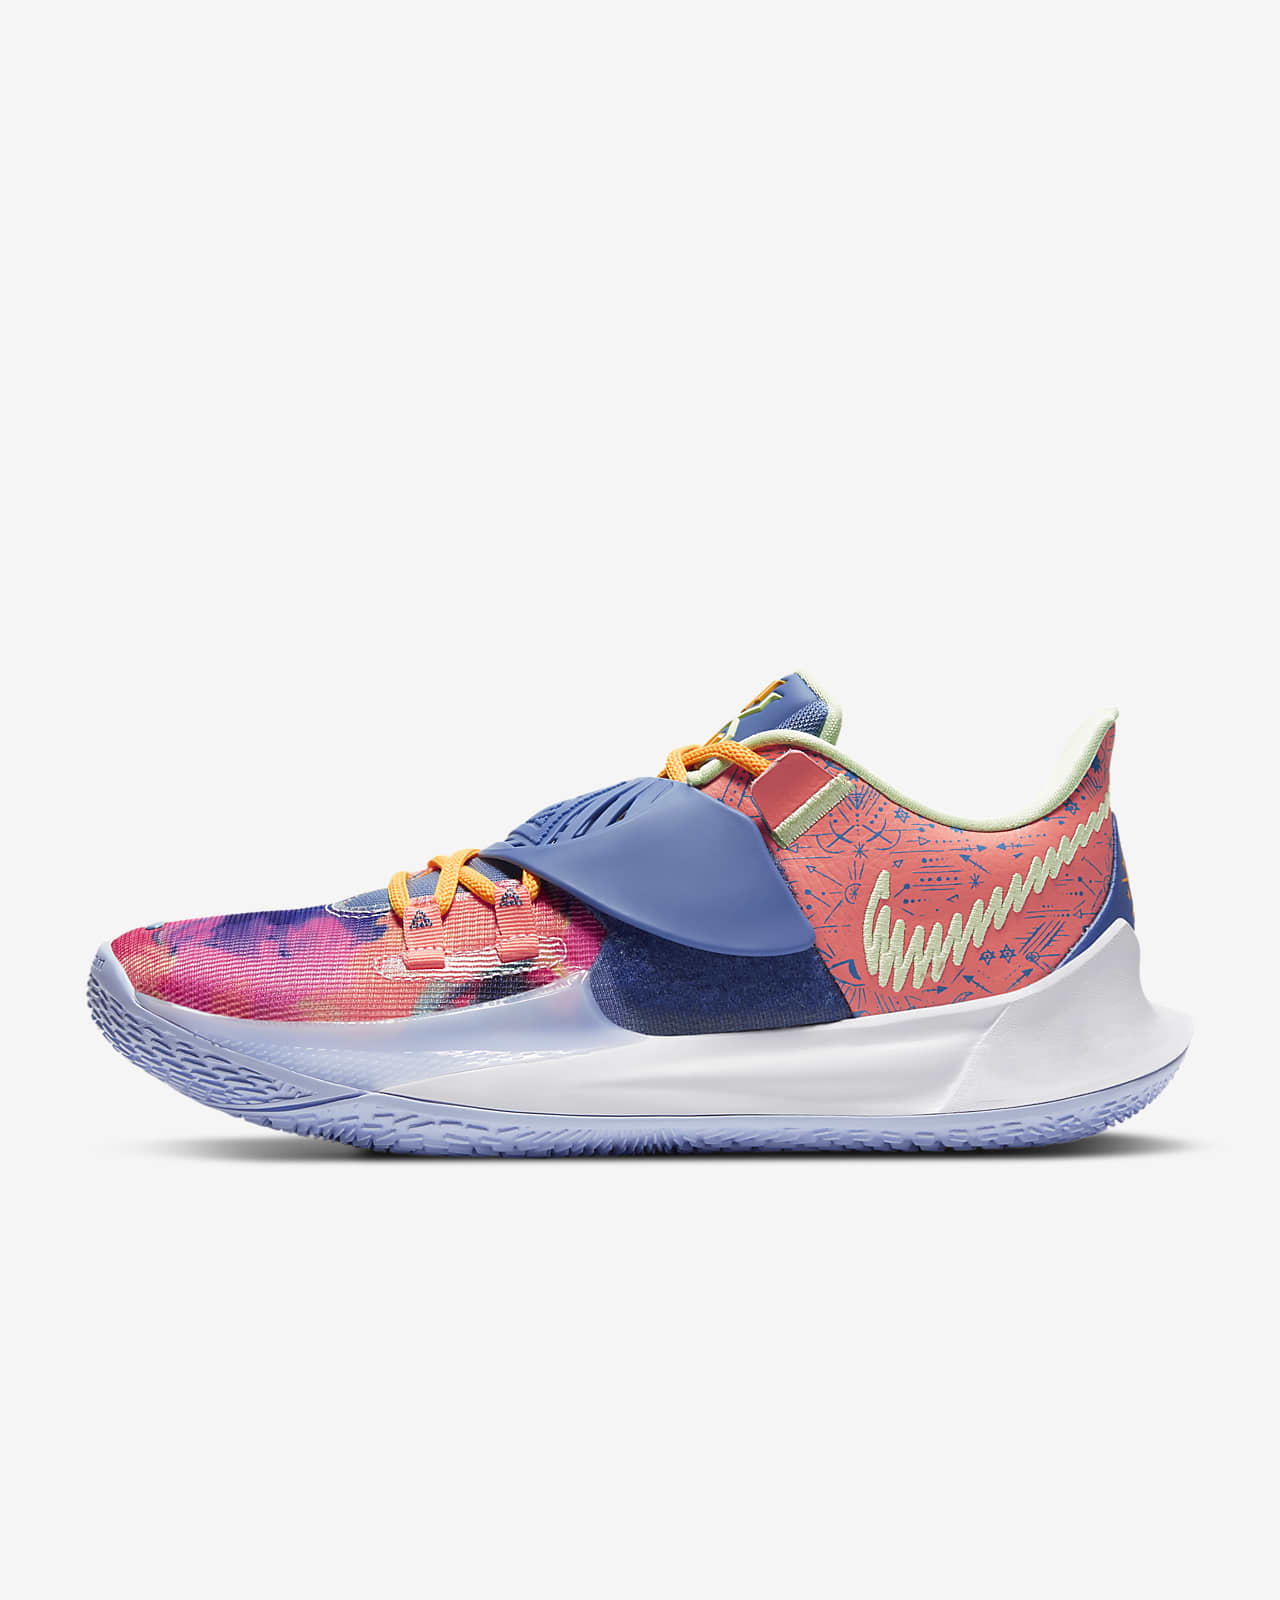 Kyrie Low 3 'Harmony' Basketball Shoe